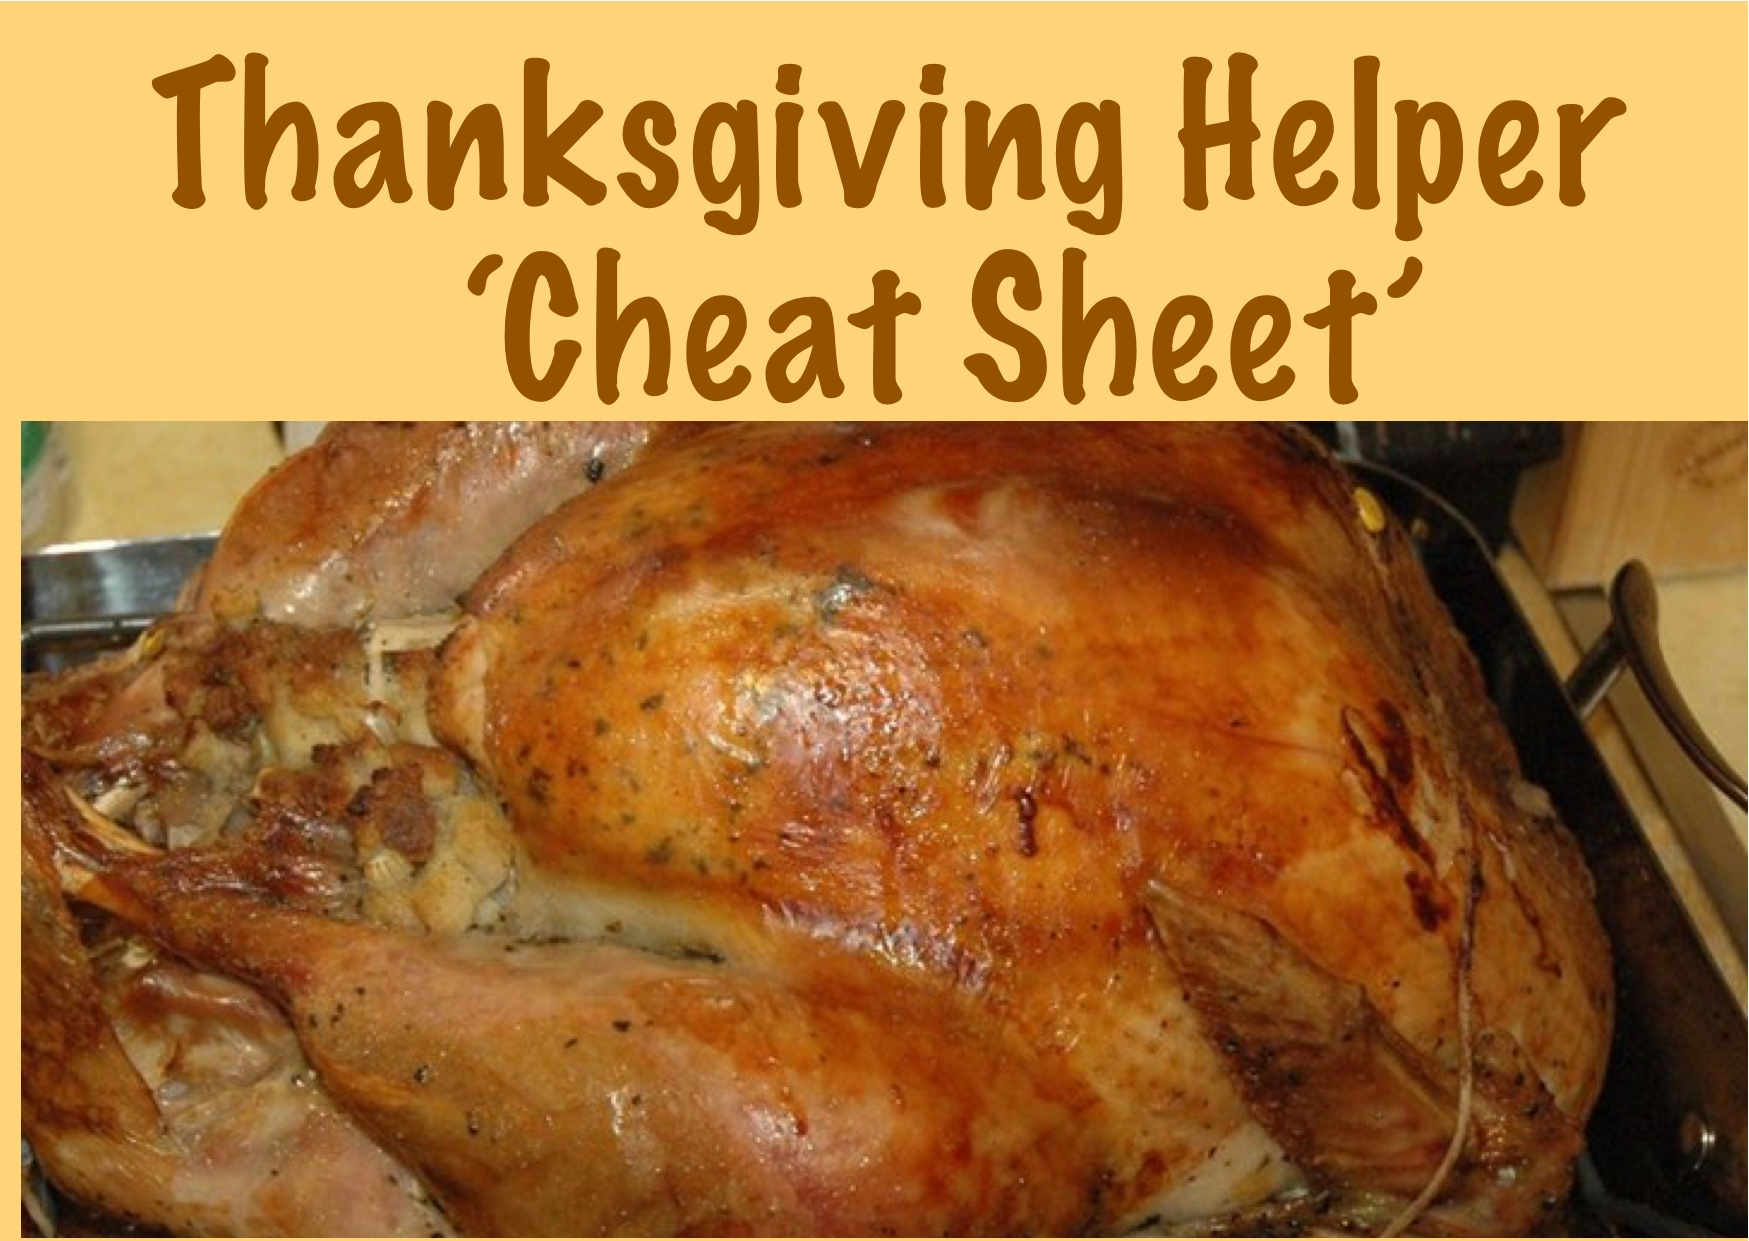 thanksgiving-cheat-sheet